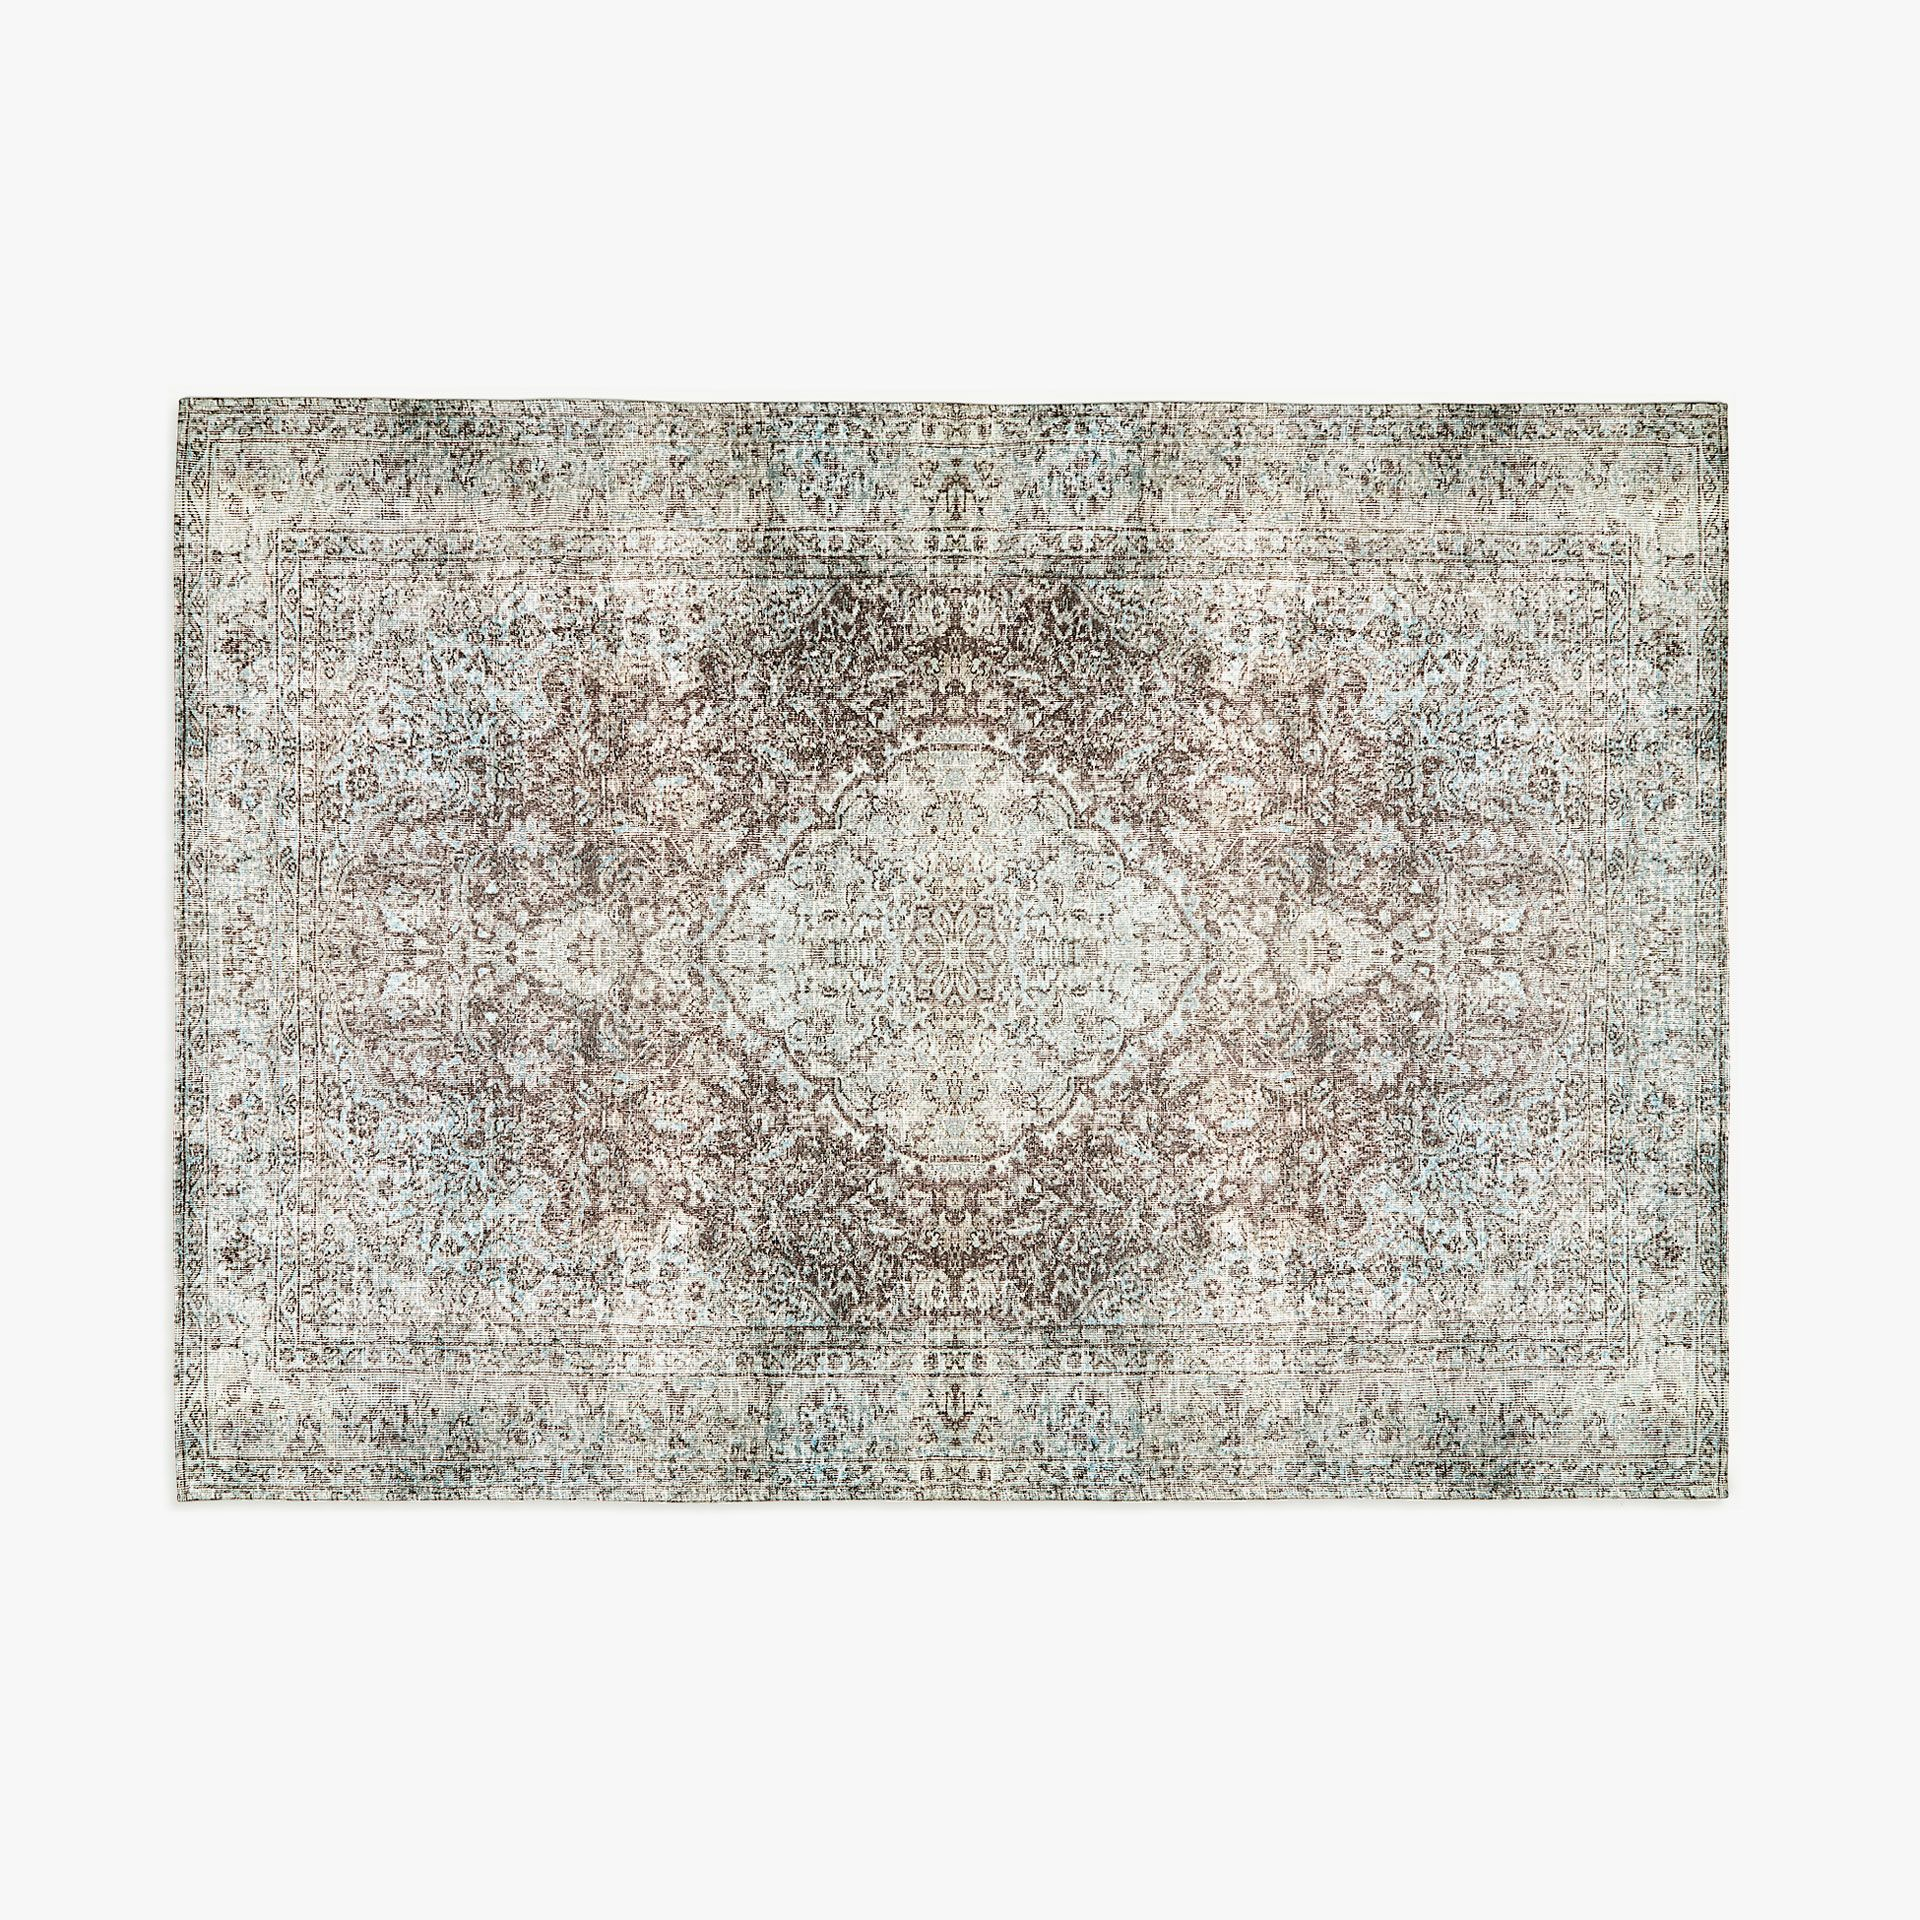 Zara Home Teppich image 1 of the product printed ombré rug project